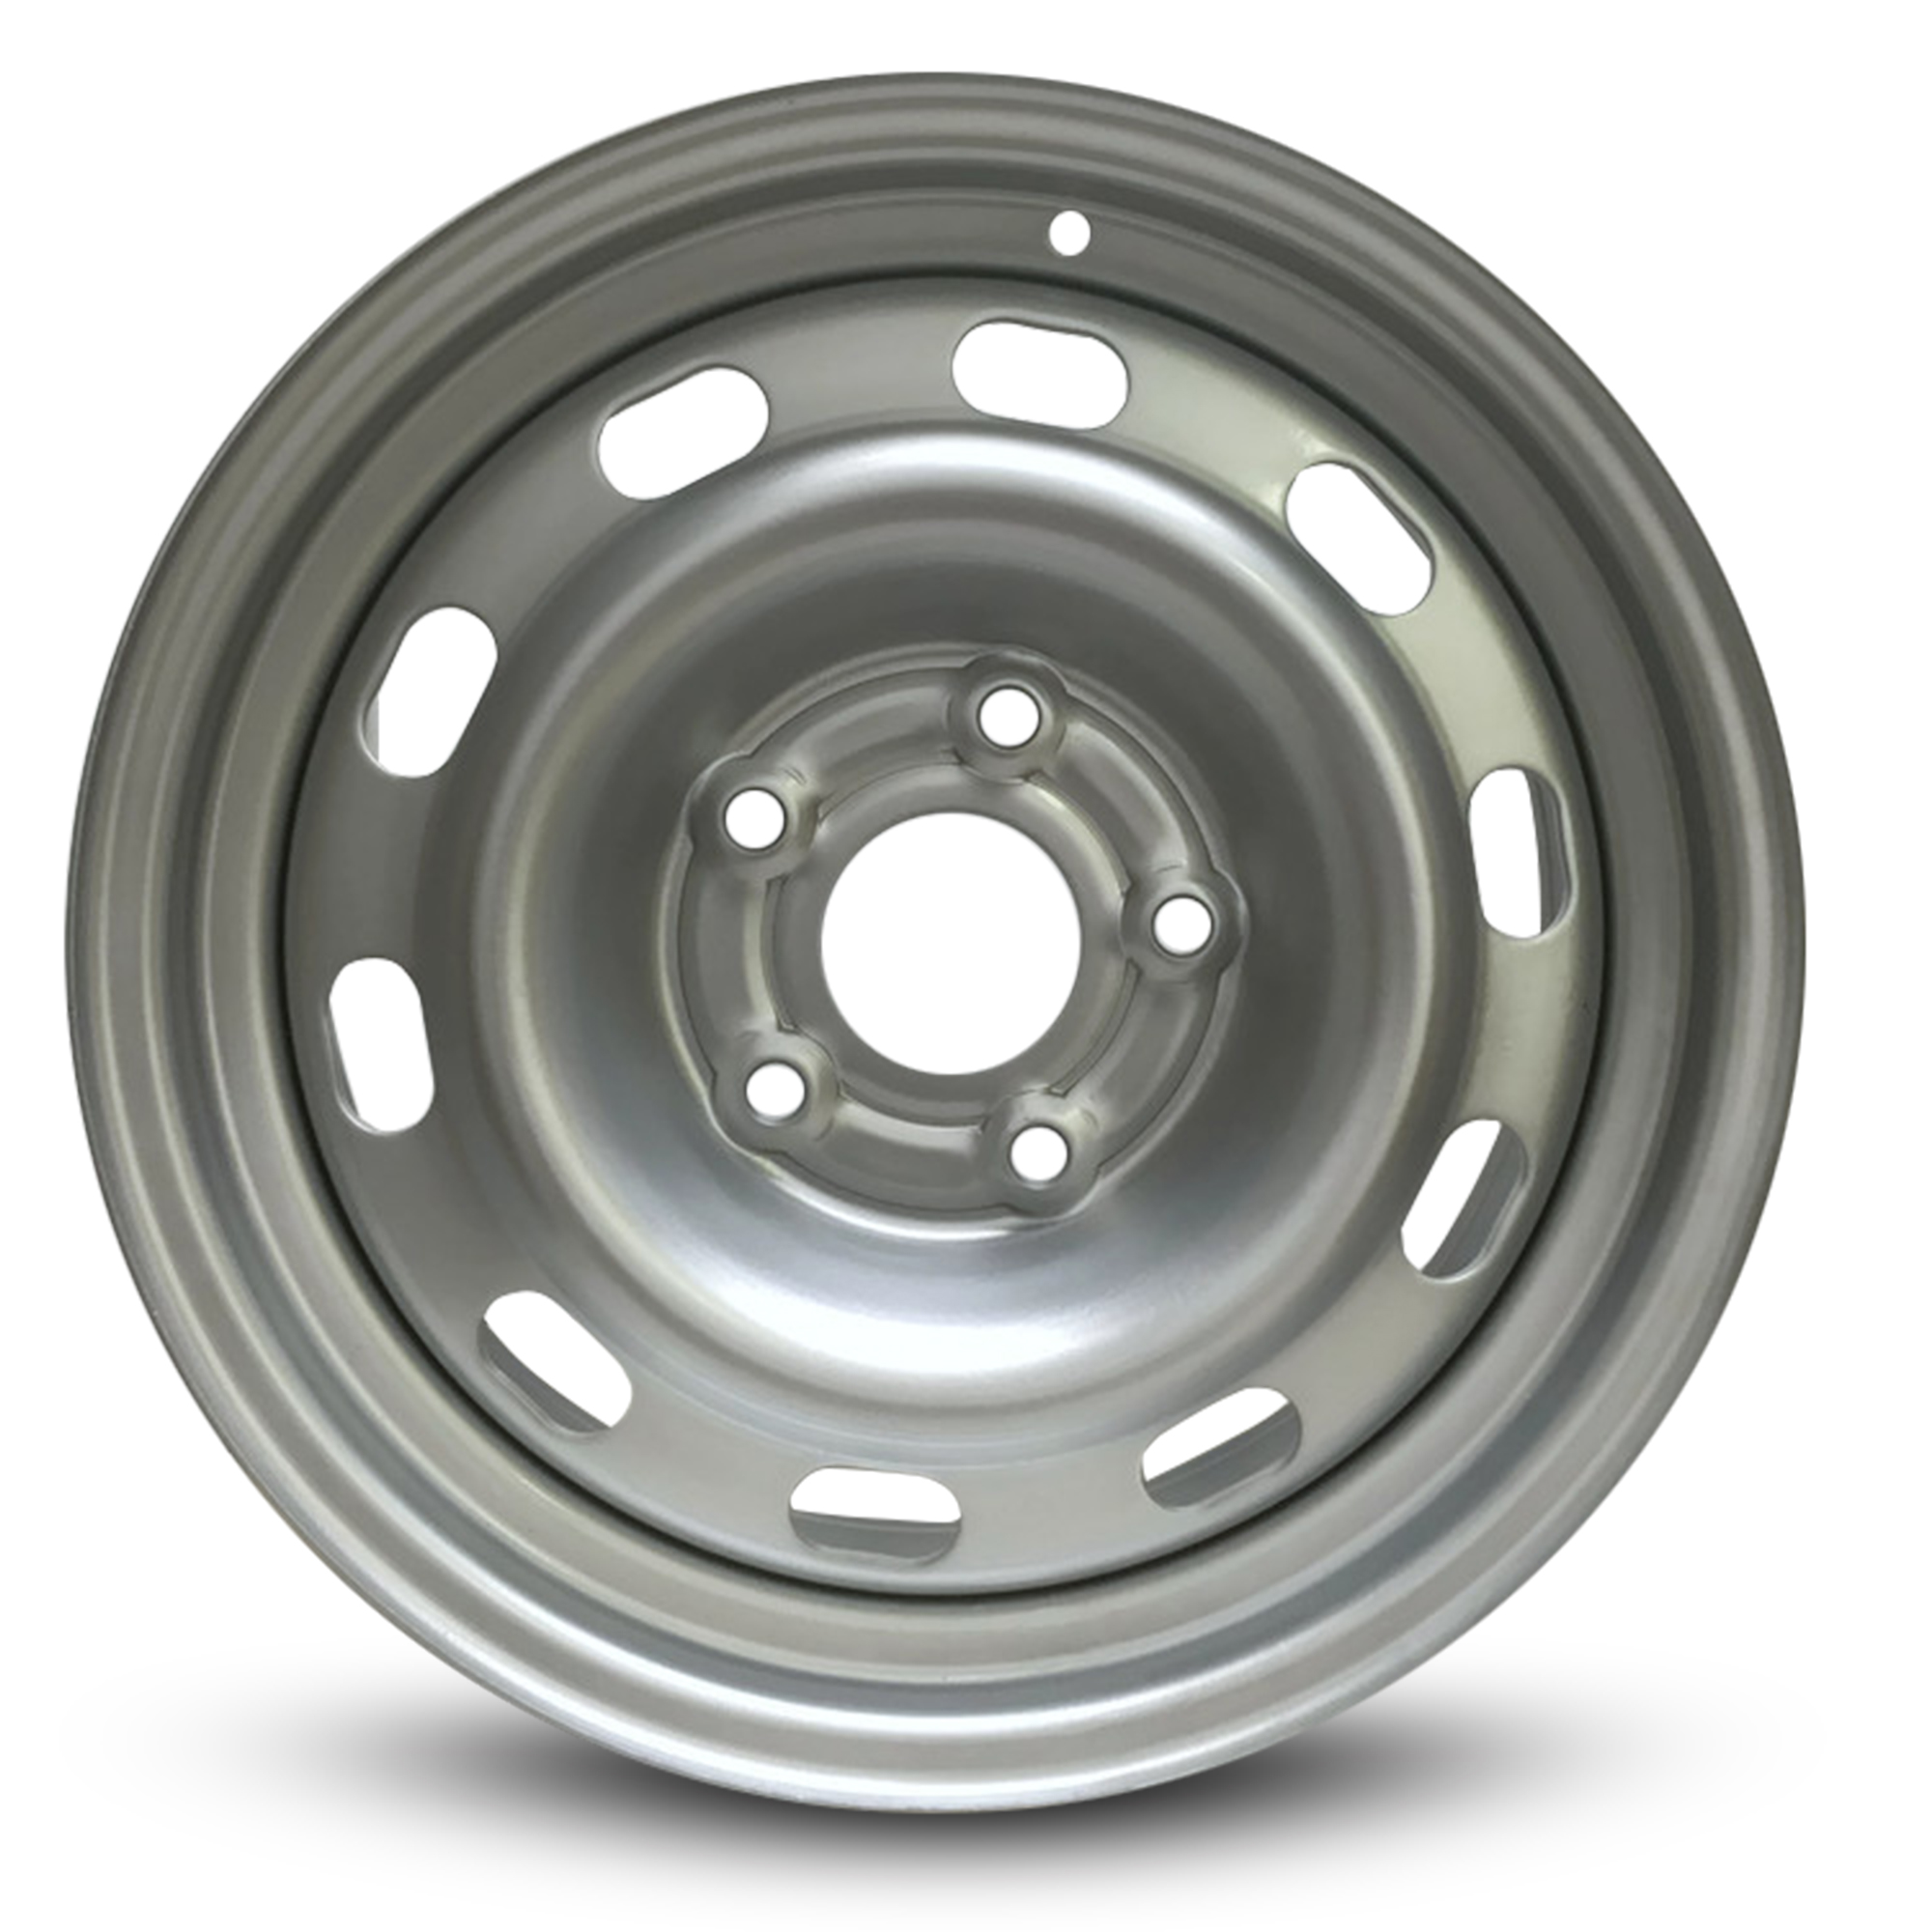 17x7 Dodge Ram 1500 Steel Wheel